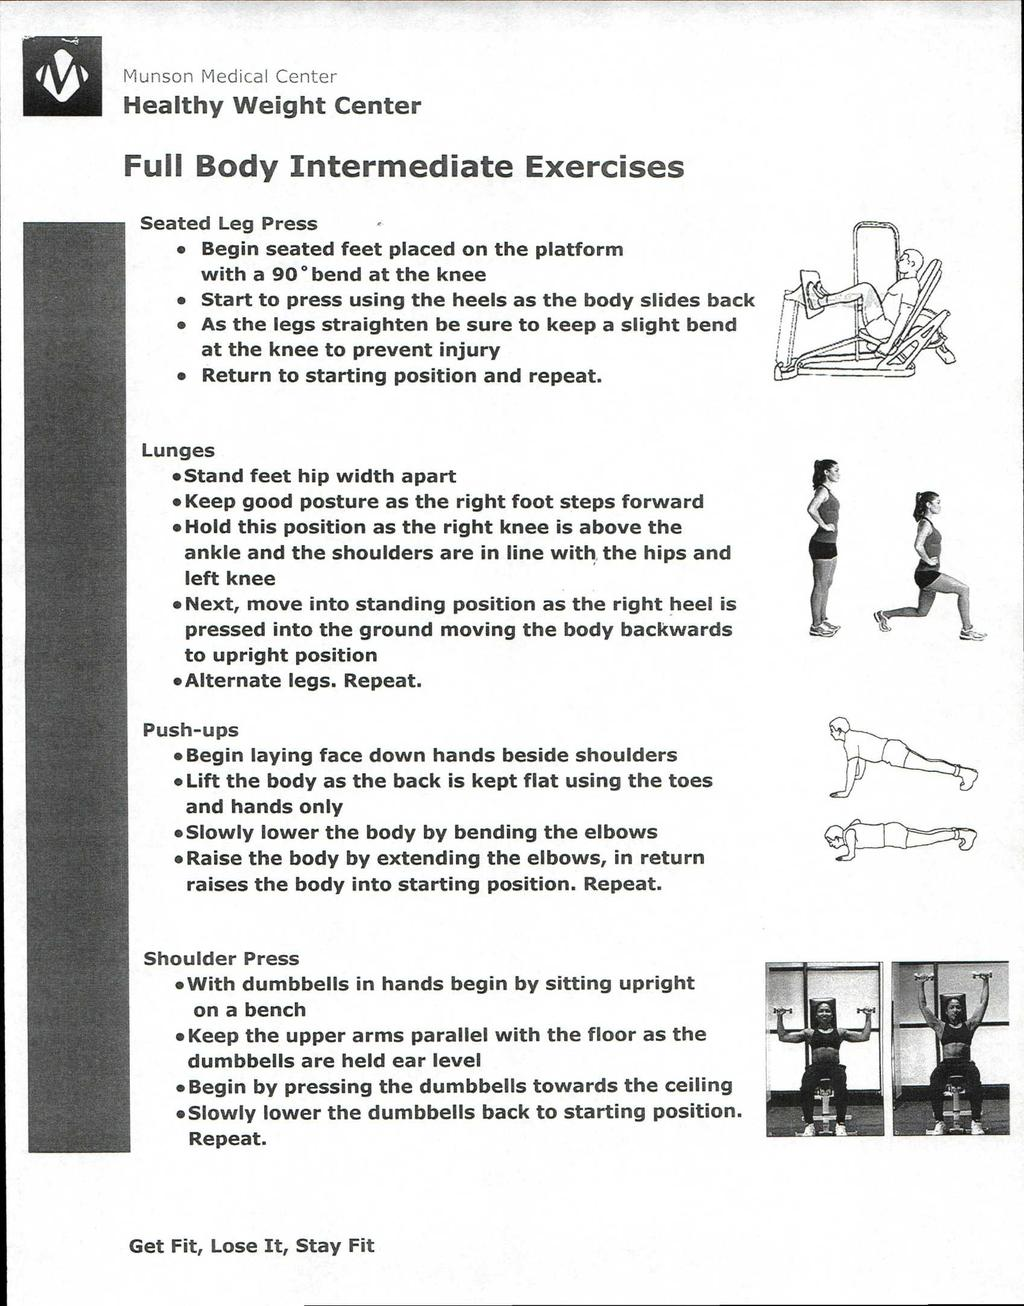 Full Body Intermediate Exercises Seated Leg Press Begin seated feet placed on the platform with a 90 bend at the knee Start to press using the heels as the body slides back As the legs straighten be